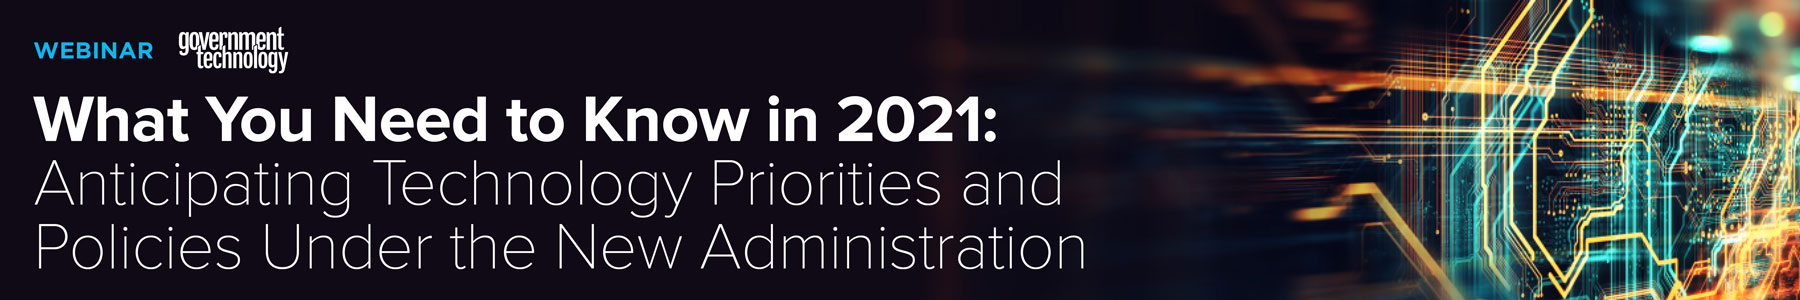 What You Need to Know in 2021: Anticipating Technology Priorities and Policies Under the New Administration